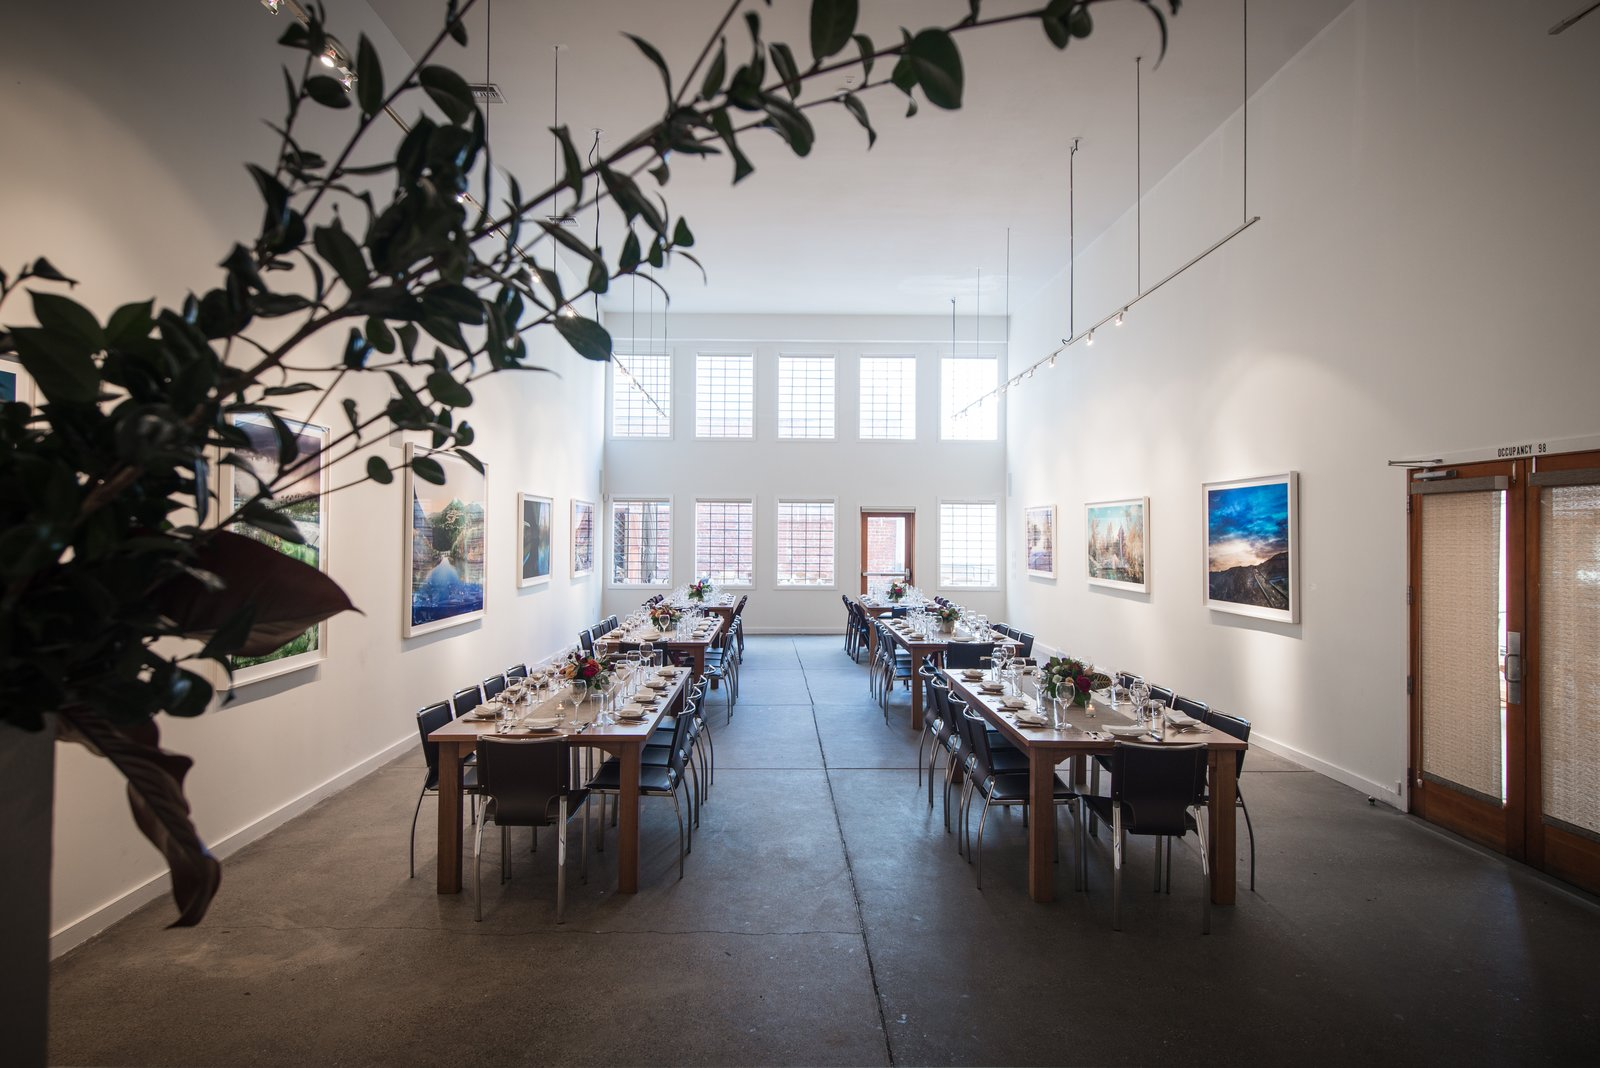 Dining, Track, Accent, Table, Concrete, Chair, and Pendant Foreign Cinema, San Francisco  Best Dining Accent Track Photos from 10 Modern Wedding Venues That Will Make Your Big Day Unforgettable